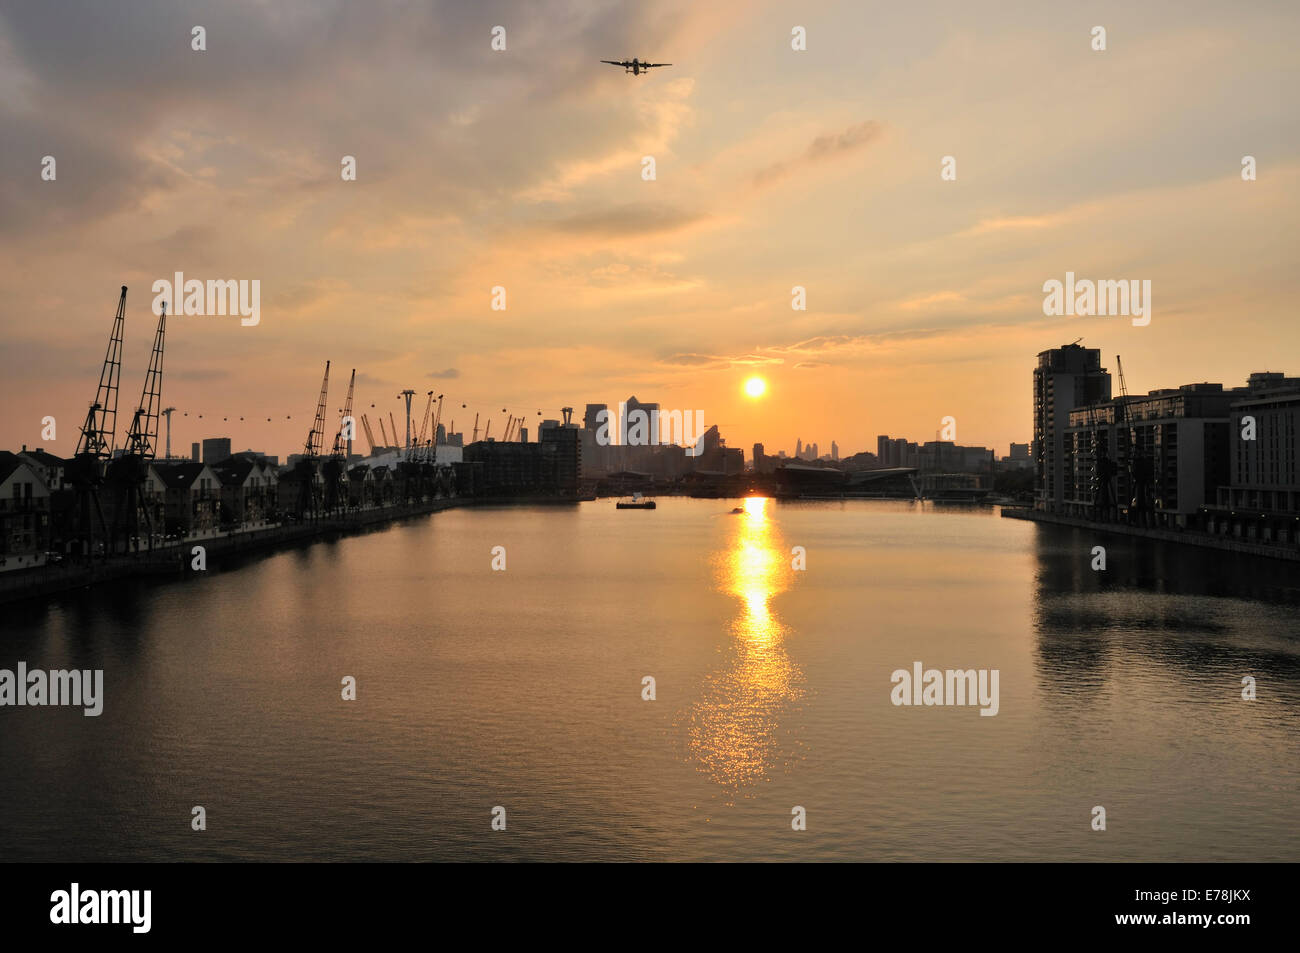 Royal Victoria Dock, Docklands, London UK, at sunset - Stock Image